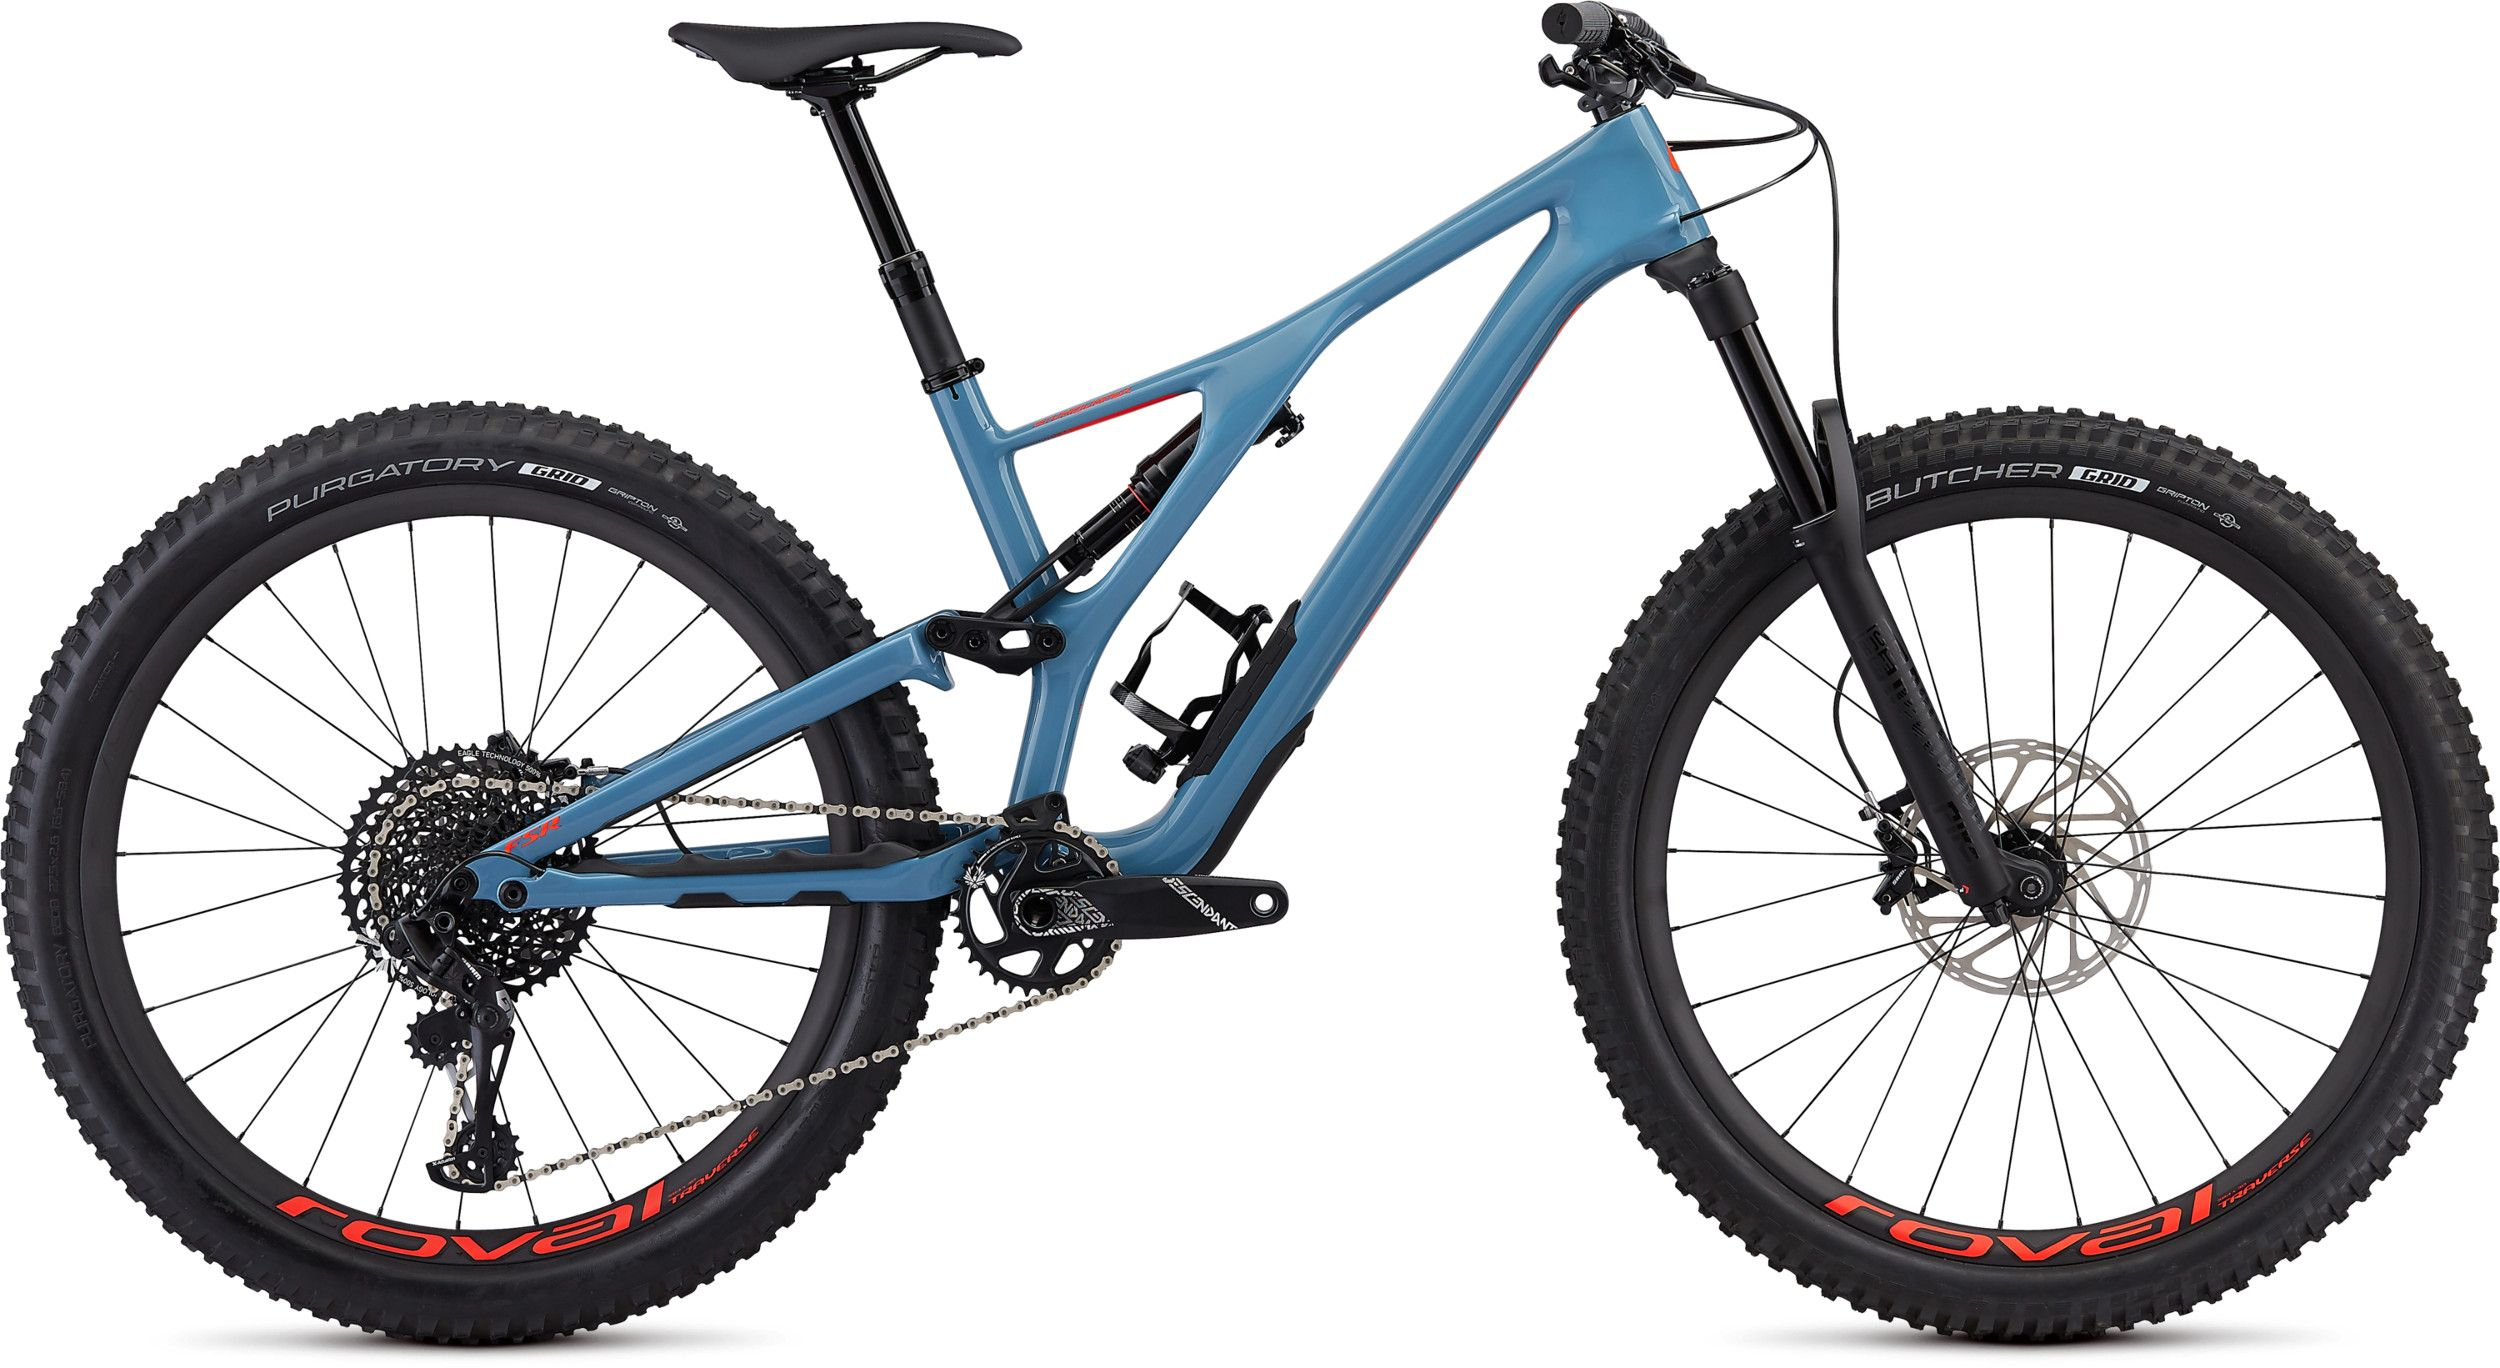 Specialized Stumpjumper Expert 27 5 Mountain Bike 2019 Storm Grey